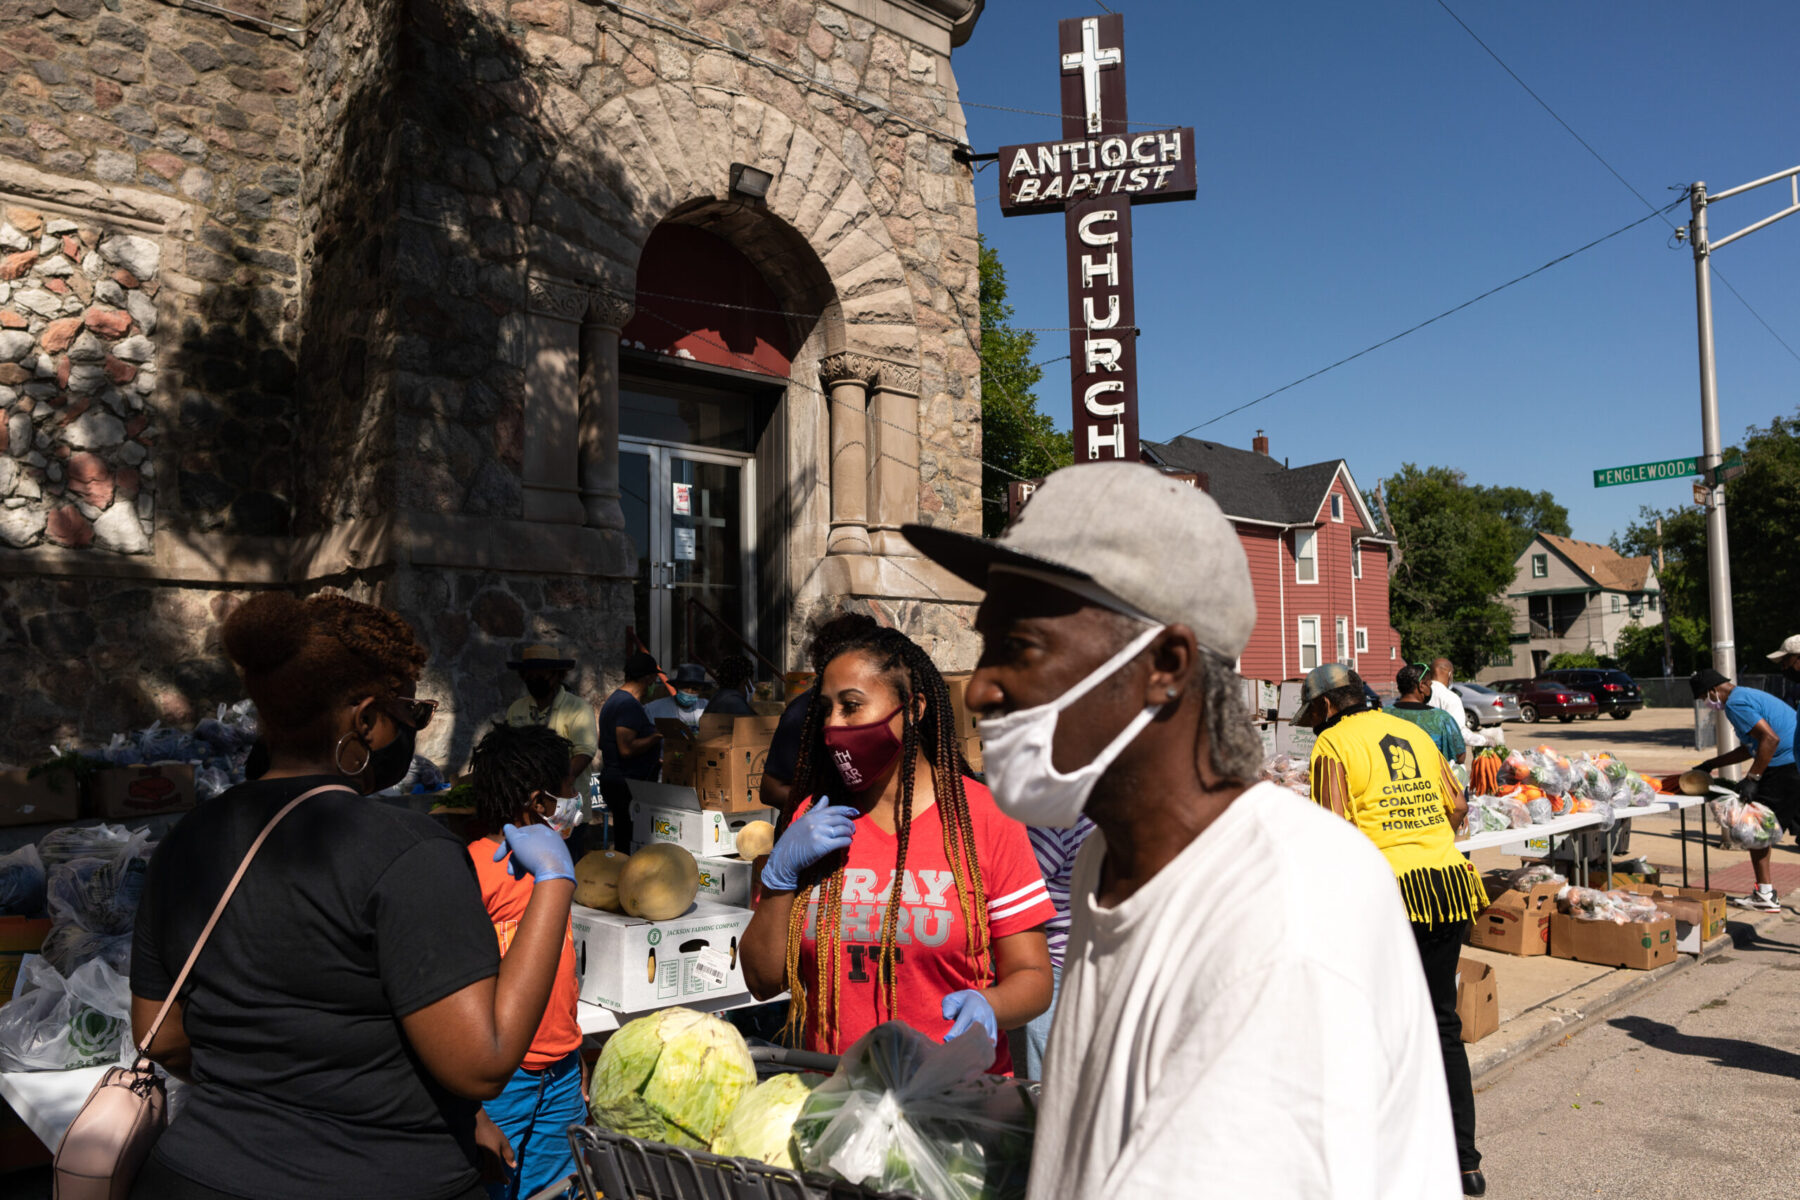 Pastor Tracey Lee and team providing supplies